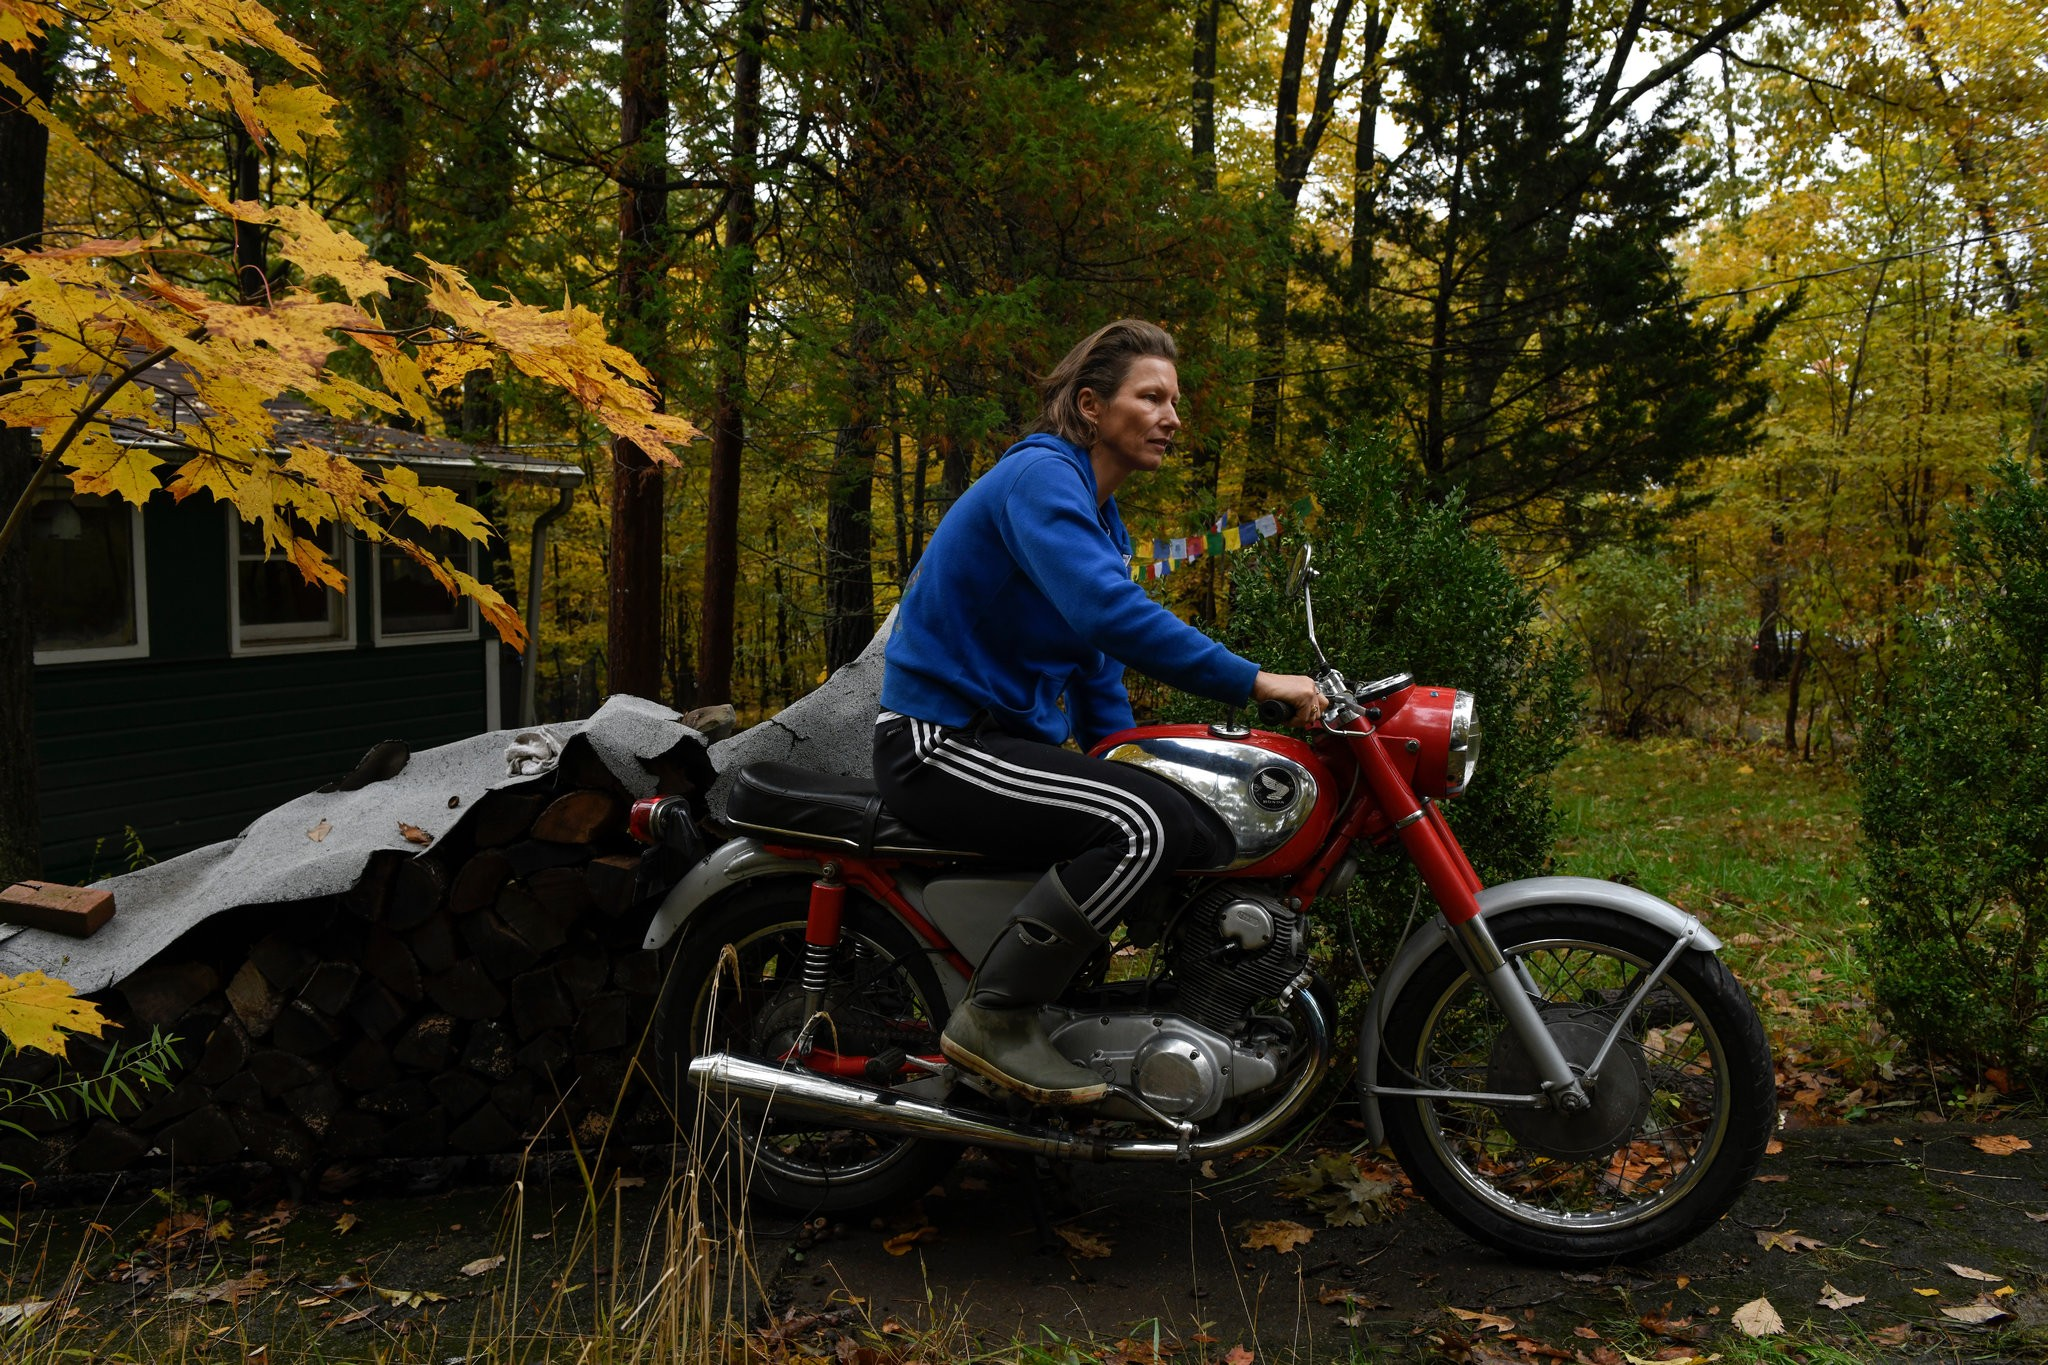 """""""It's an old-timer, a Honda CB77 Super Hawk from 1964. One interesting thing about that bike is it's the same as the one from 'Zen and the Art of Motorcycle Maintenance.'"""""""